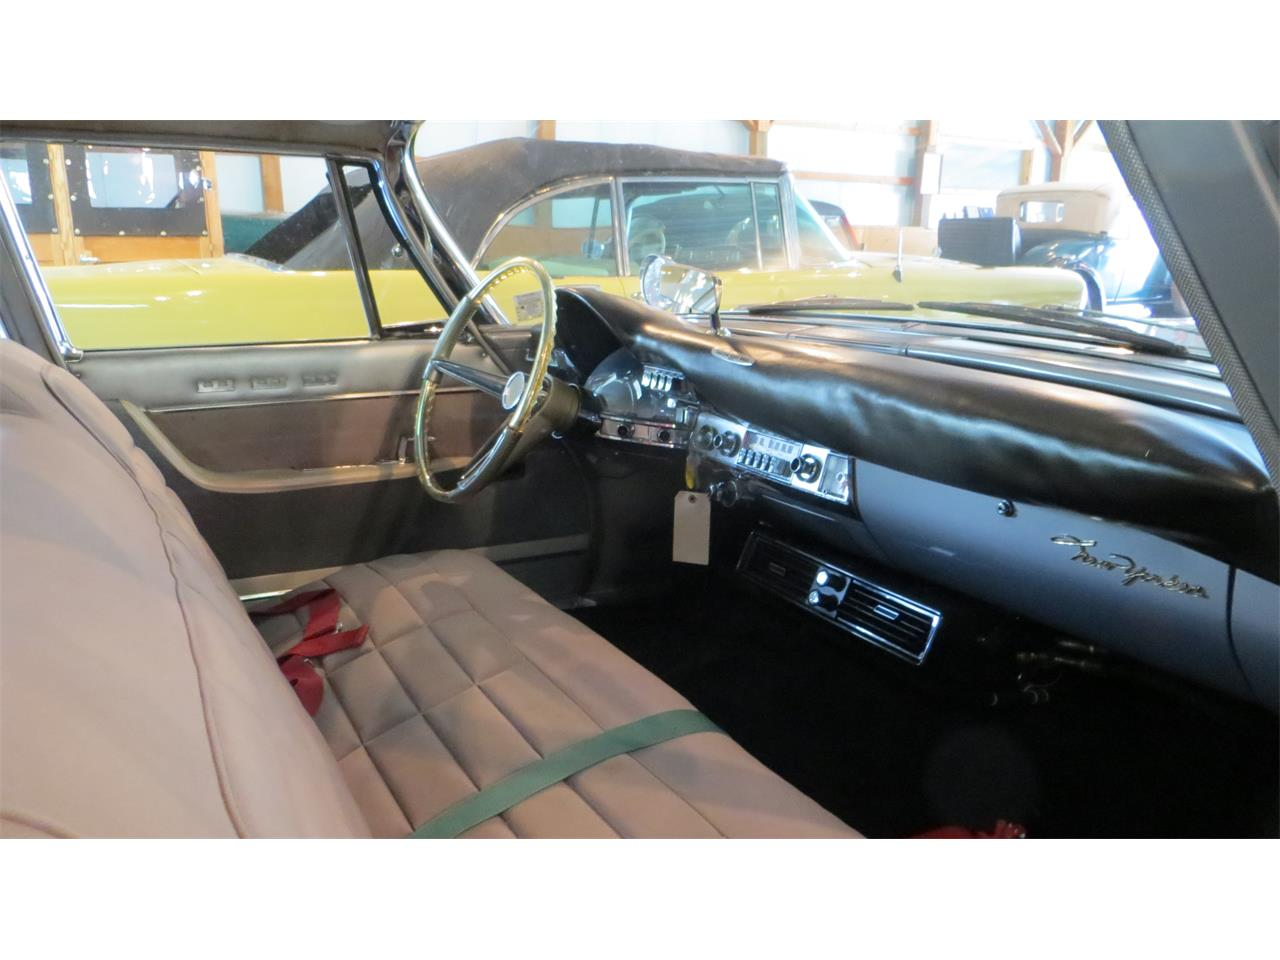 Large Picture of '60 Chrysler New Yorker located in New York - $20,000.00 Offered by a Private Seller - EFP7